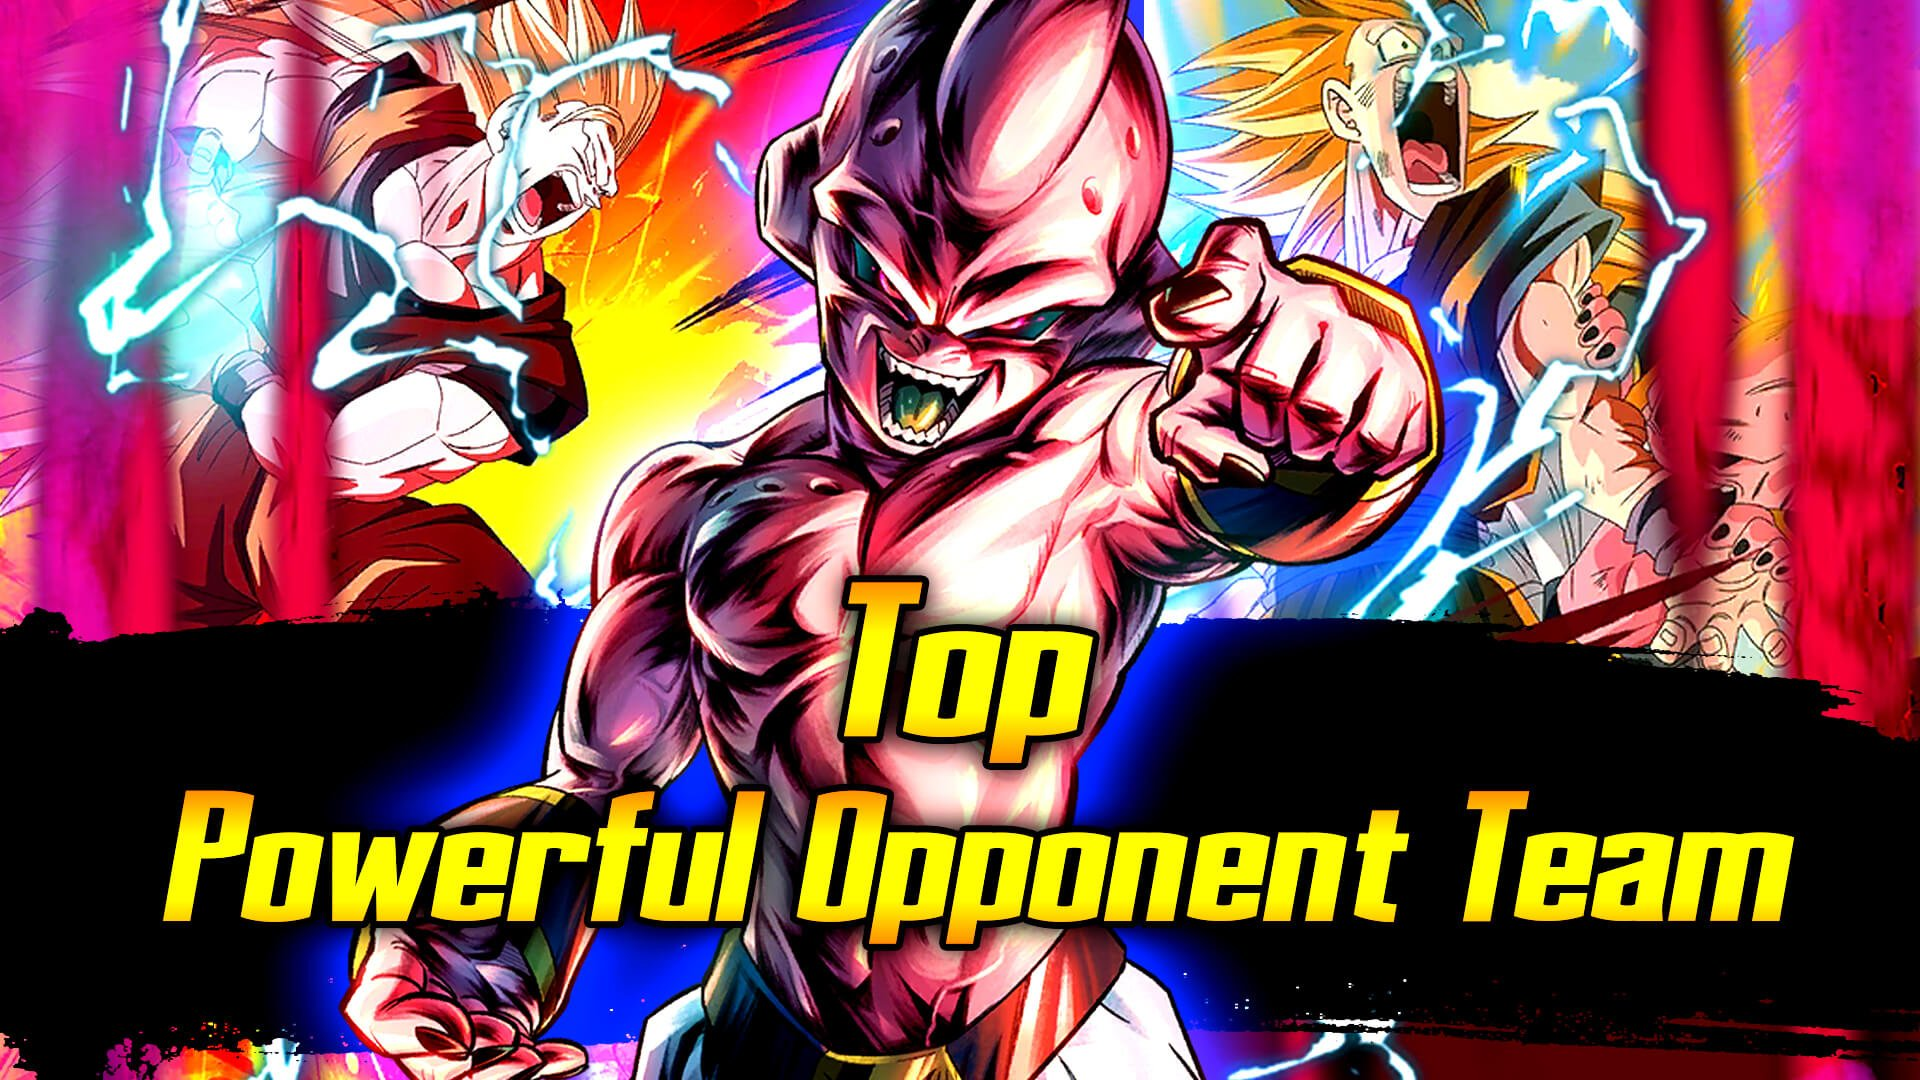 Top Powerful Opponent Team